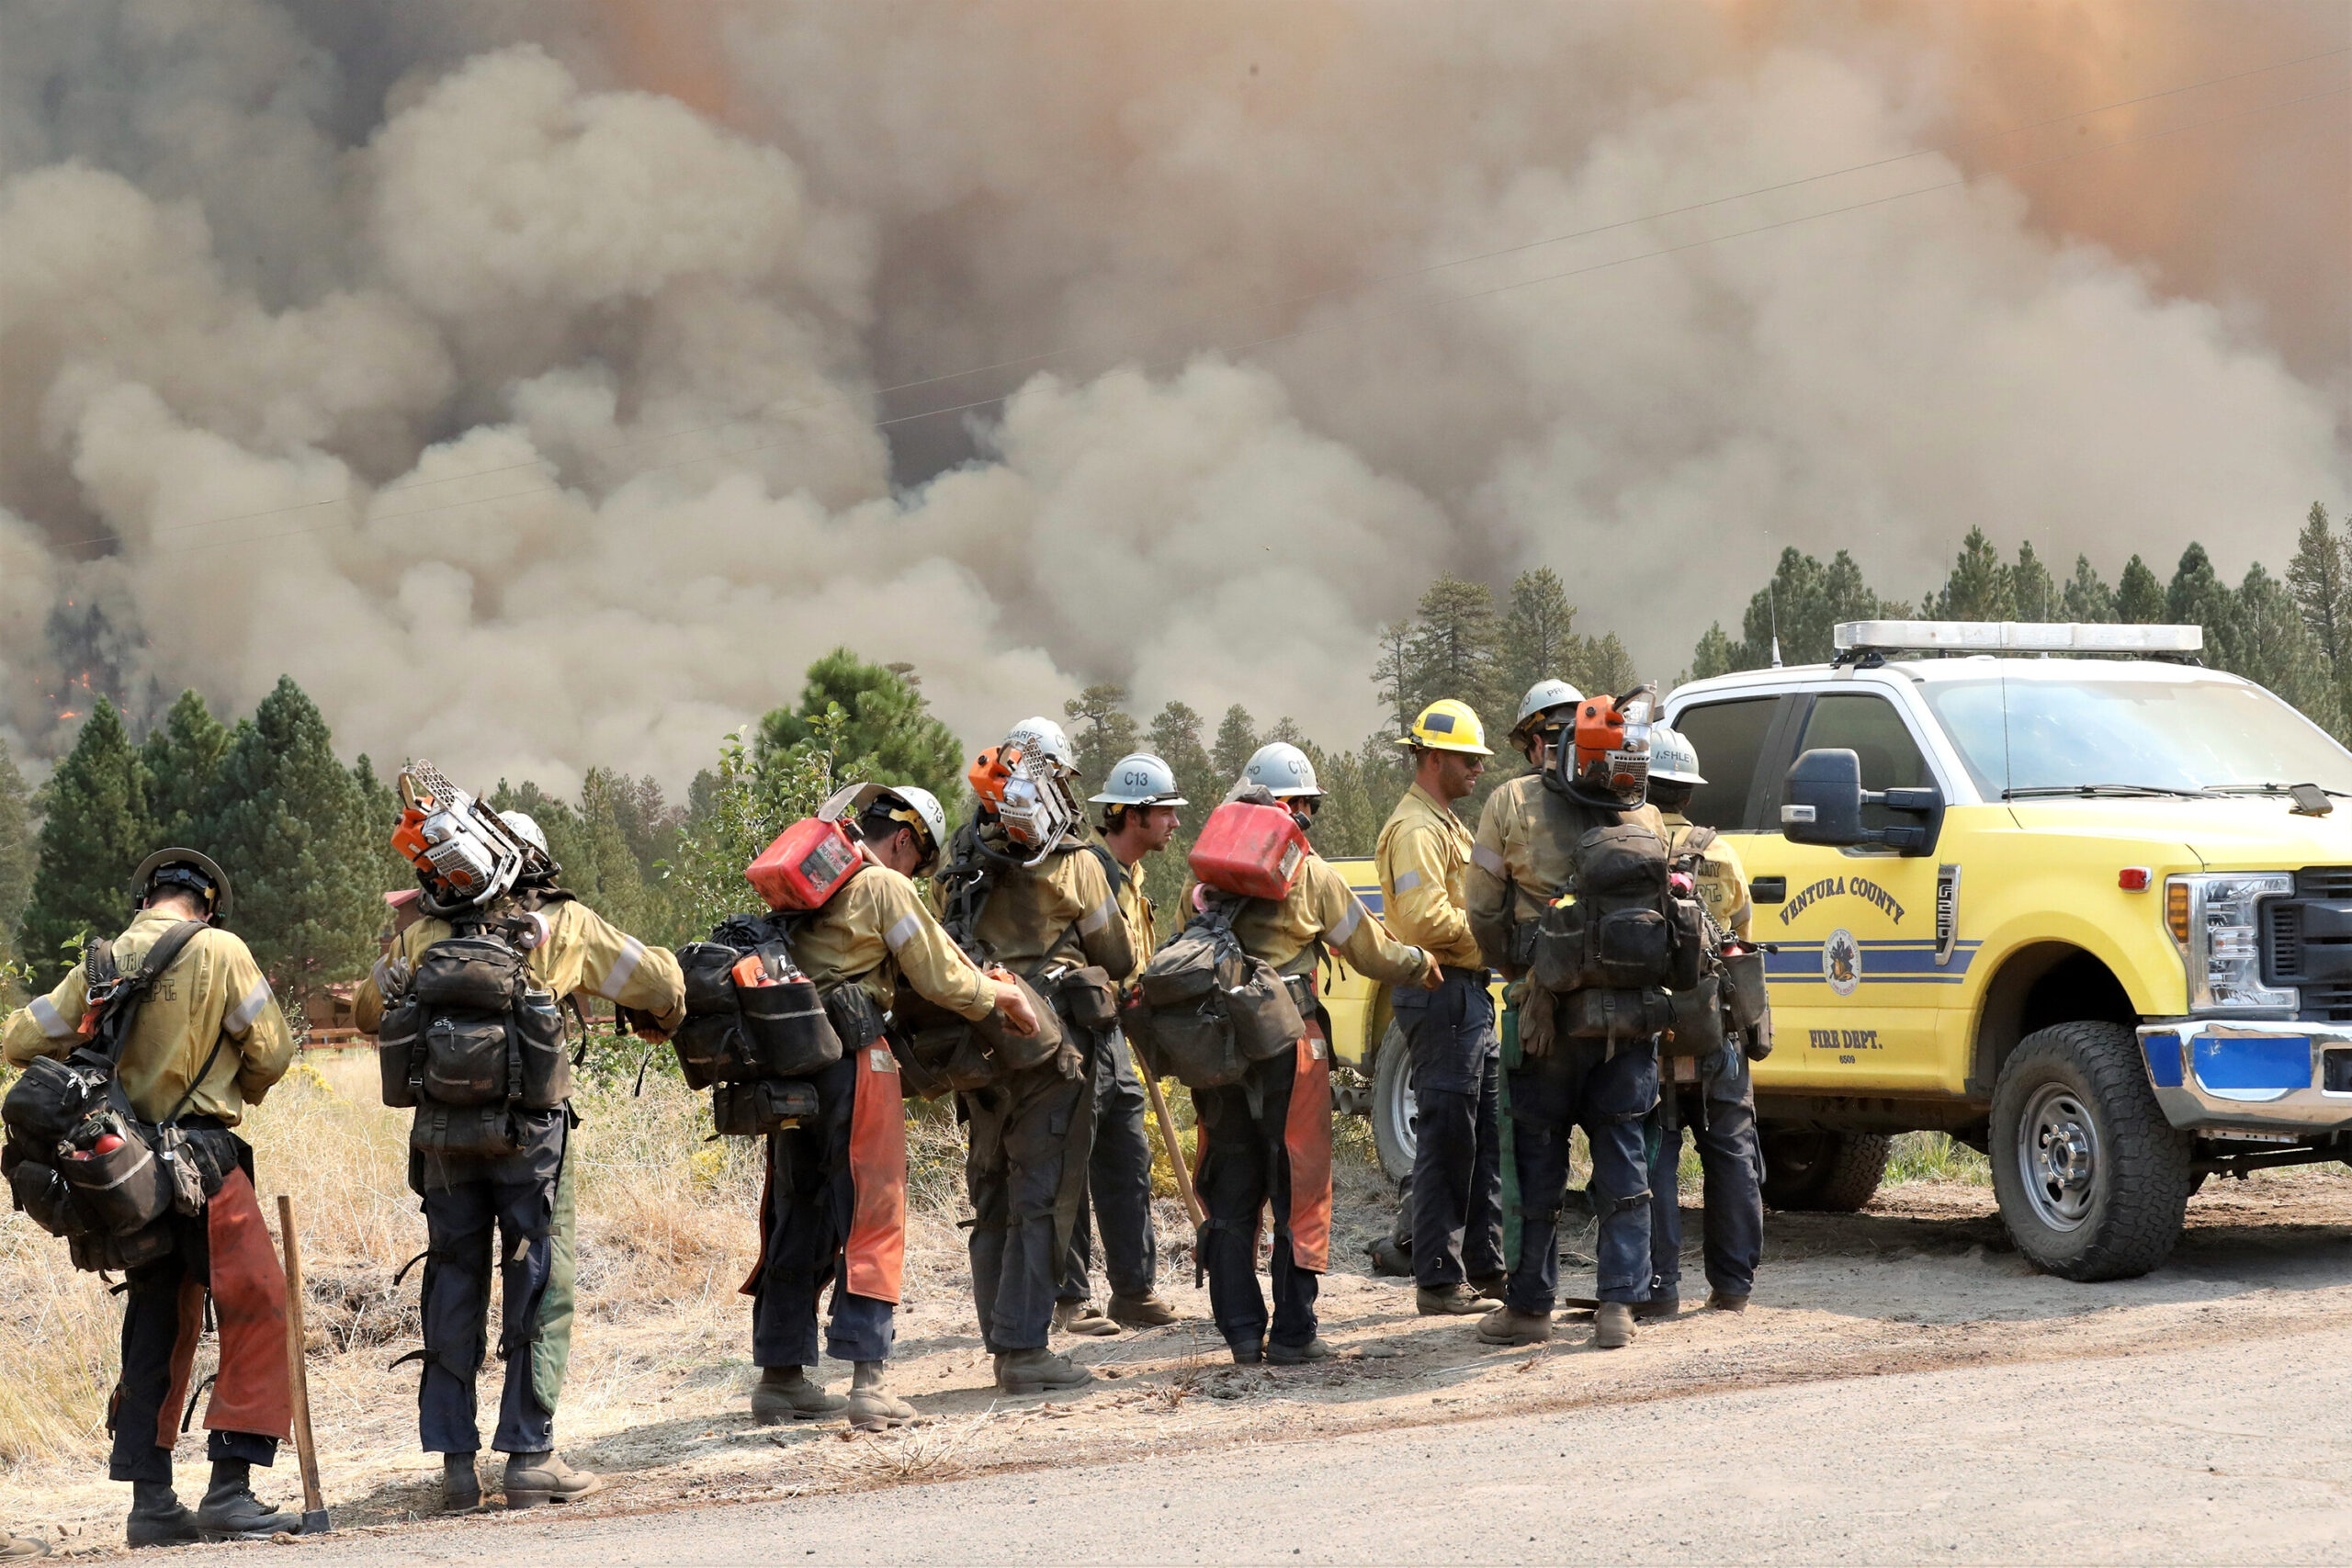 <i>Mike Chapman/Record Searchlight/USA Today Network</i><br/>California's Dixie Fire is nearing the devastating milestone of one million acres scorched. Firefighters here battle the raging Dixie Fire in Redding